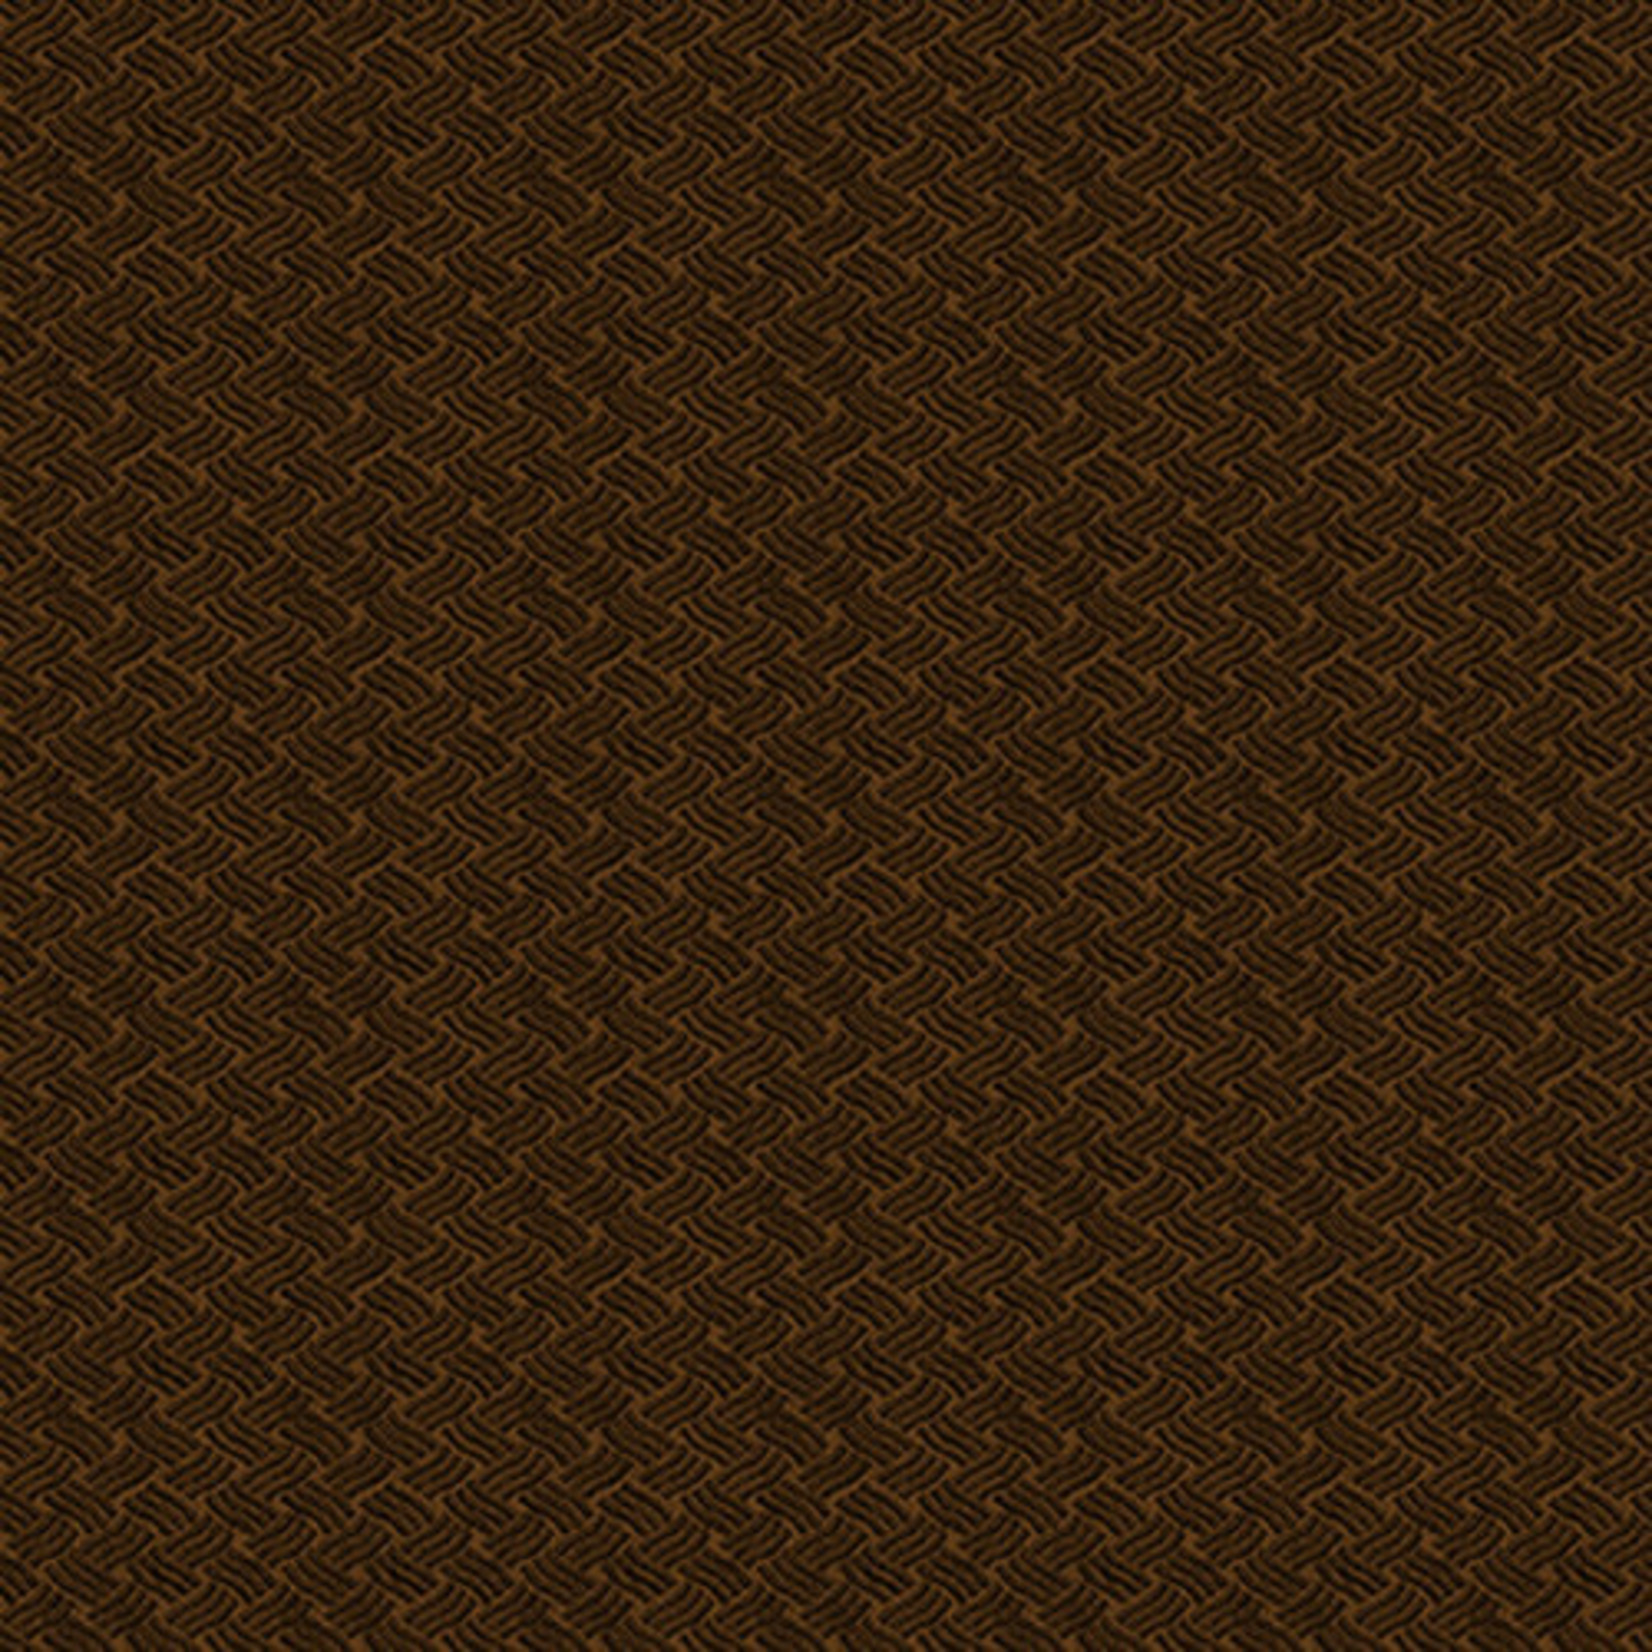 Blank Quilting Barn Dance - Wave Texture - Brown